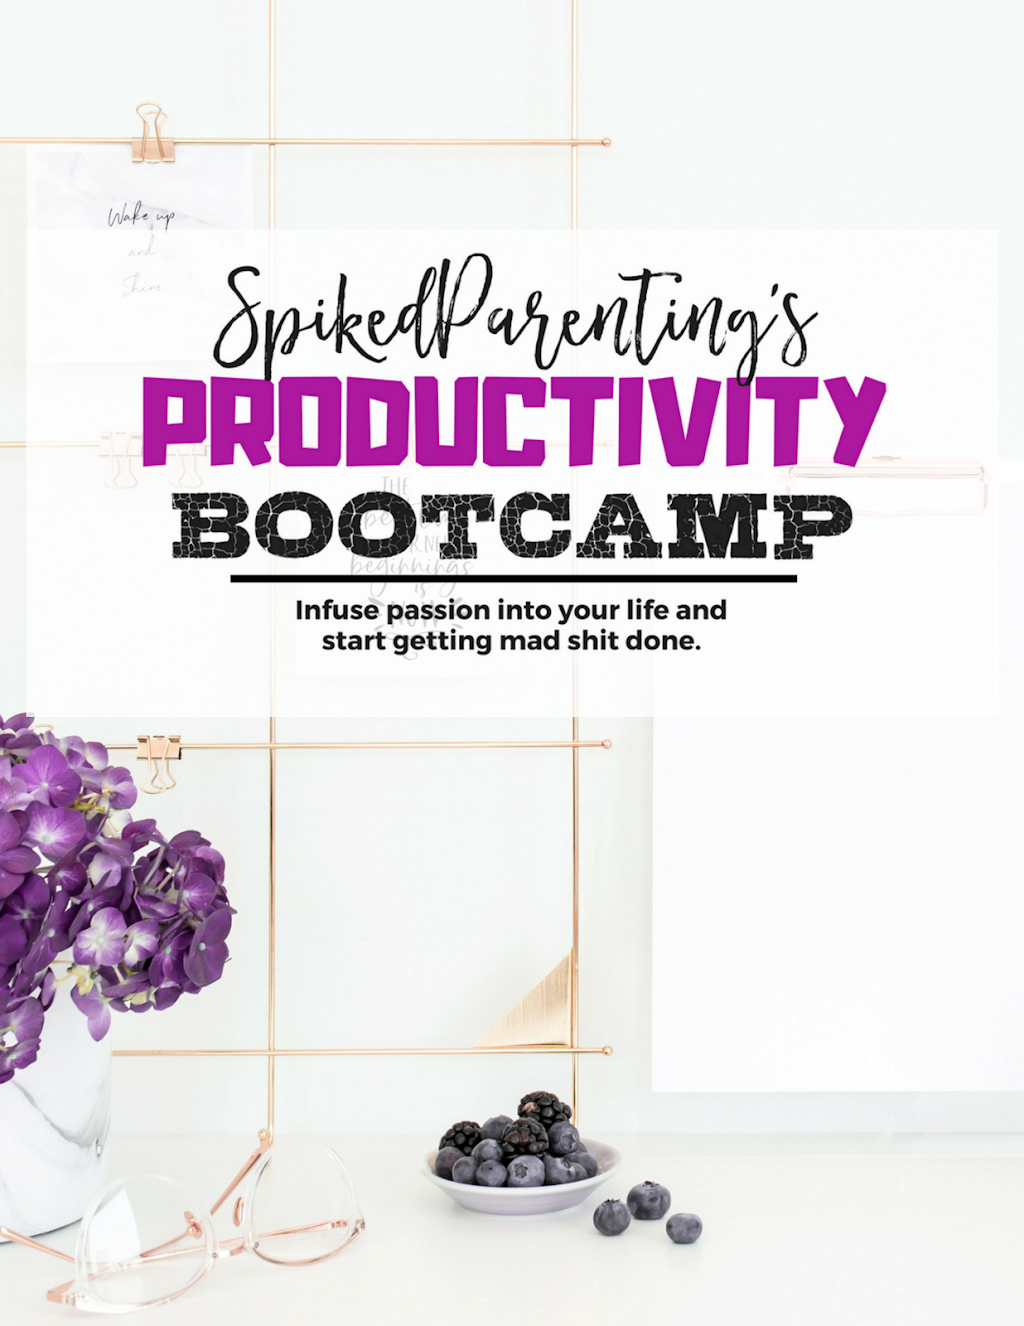 SpikedParenting's Productivity Bootcamp   Infuse Passion Into Your Life and Start Getting Mad Shit Done